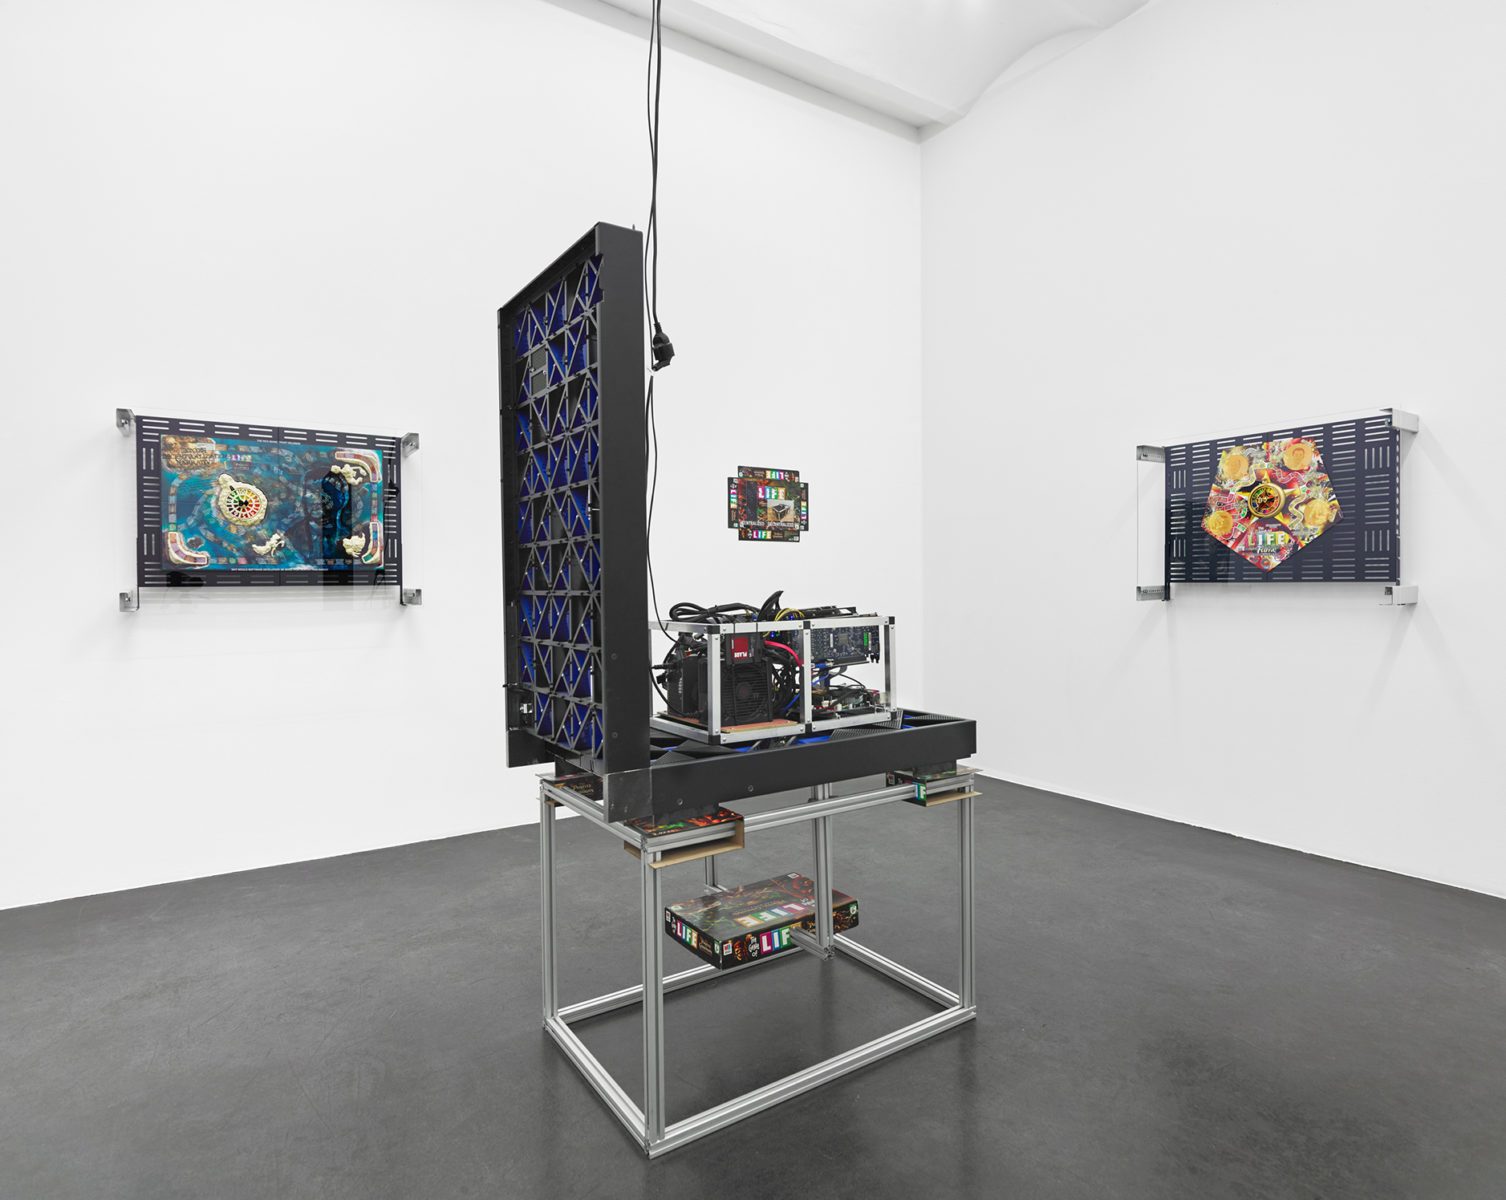 Installation view of Games of Decentralized Life at Buchholz, Cologne